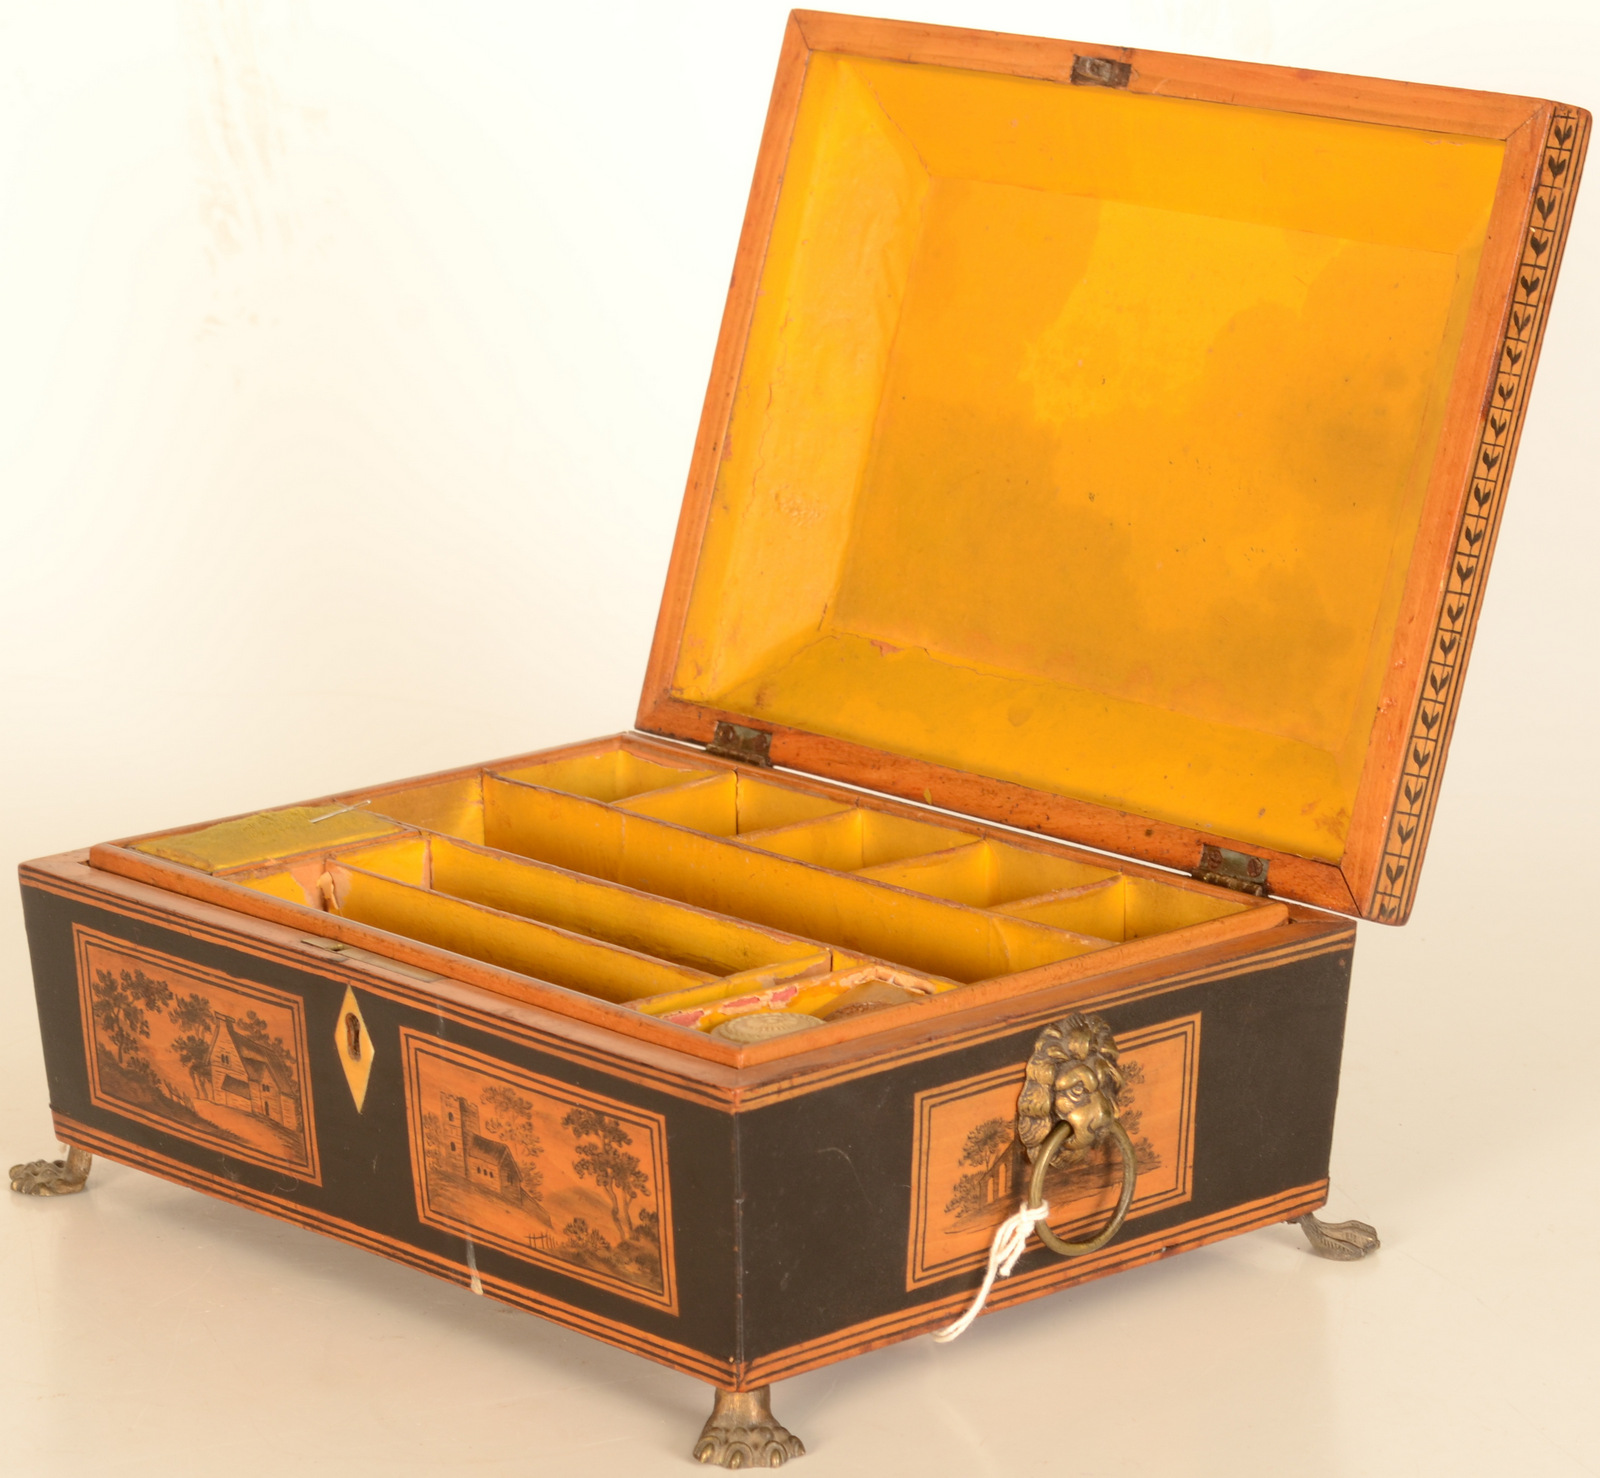 Lot 9 - A penwork box, early 19th century, the cover decorated with a cottage amongst trees,